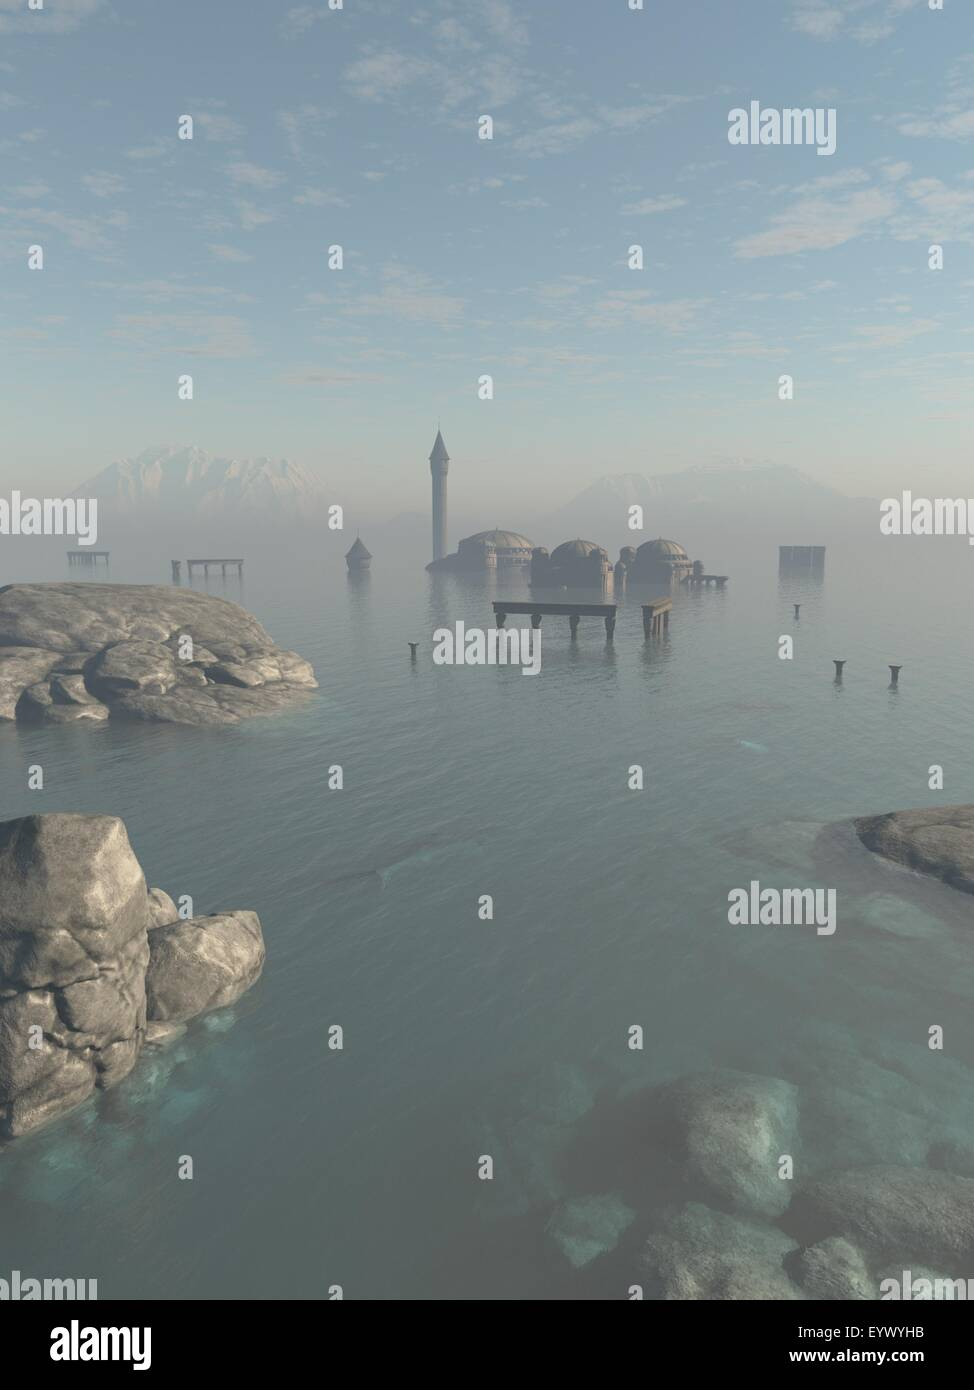 Drowned City Ruins of Atlantis - Stock Image